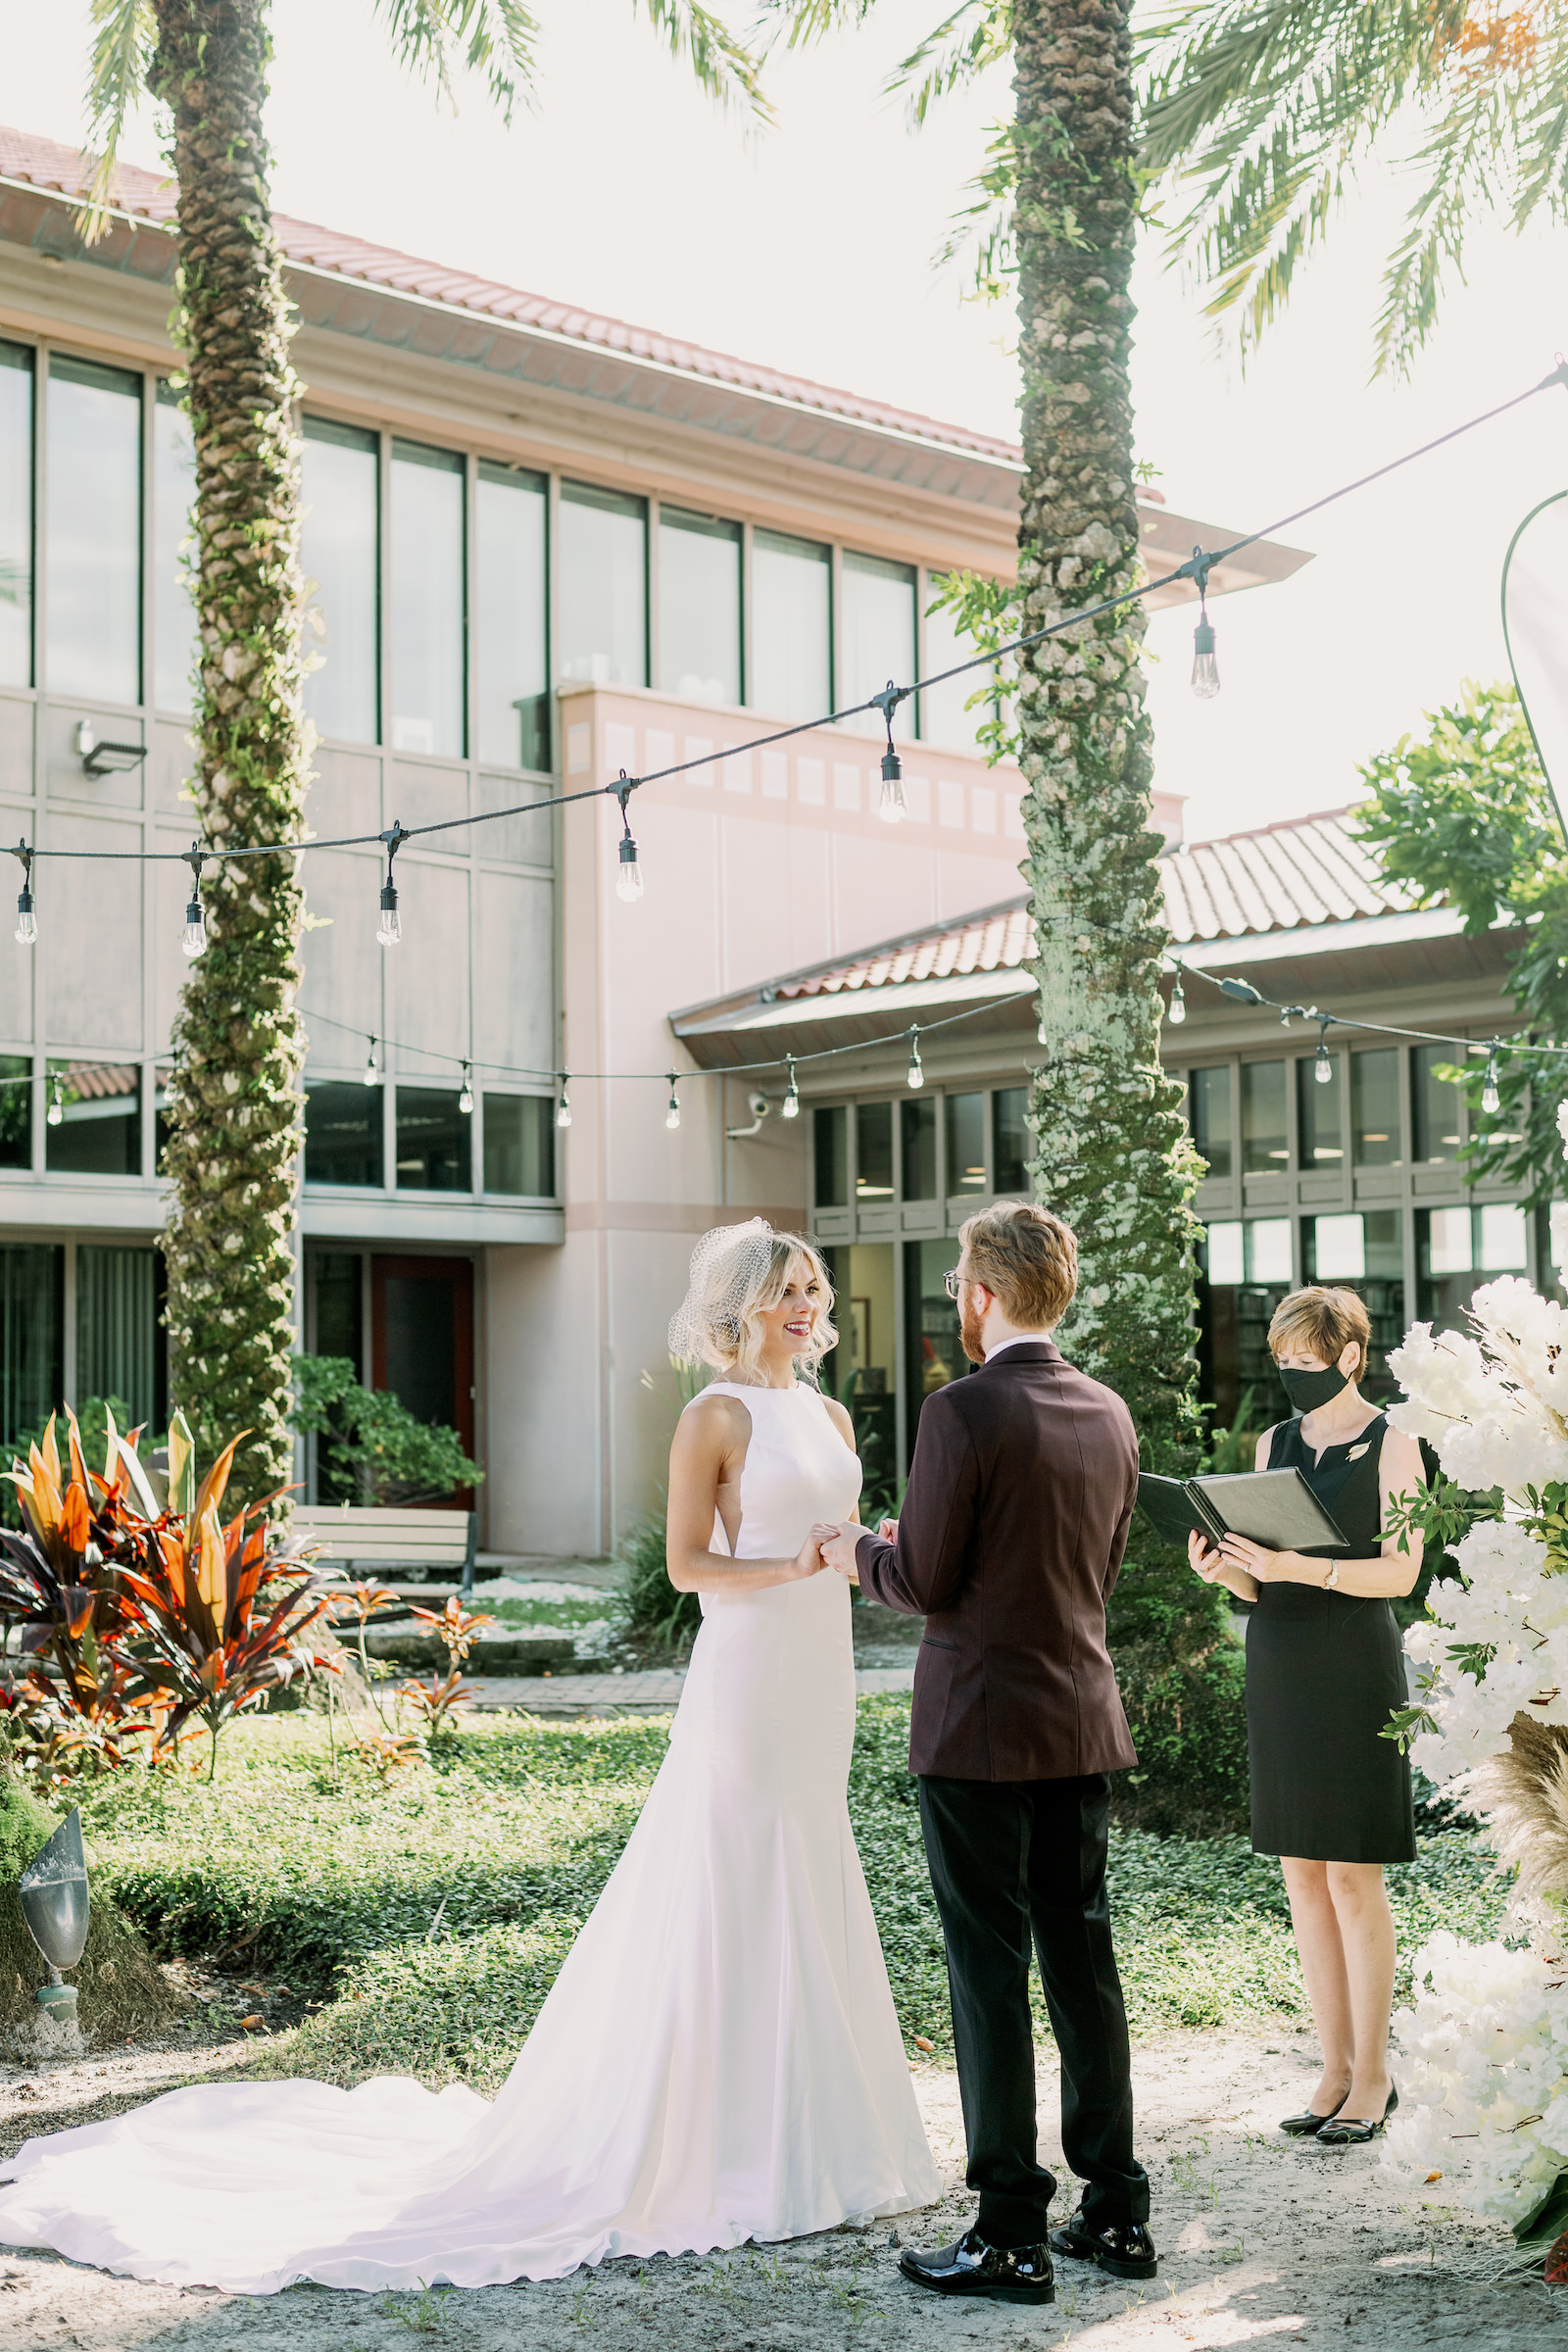 Bride and Groom Outdoor Atrium Intimate COVID Elopement Micro Wedding Ceremony at St. Pete Wedding Venue The Poynter Institute   LoAdoro Bridal Sleek Fitted Modern Wedding Dress Bridal Gown with Birdcage Veil from Tampa Bridal Shop Truly Forever Bridal   Groom in Modern Suit with Dark Red Maroon Jacket with Black Satin Lapel and Bow Tie   Tampa Wedding Officiant A Wedding With Grace